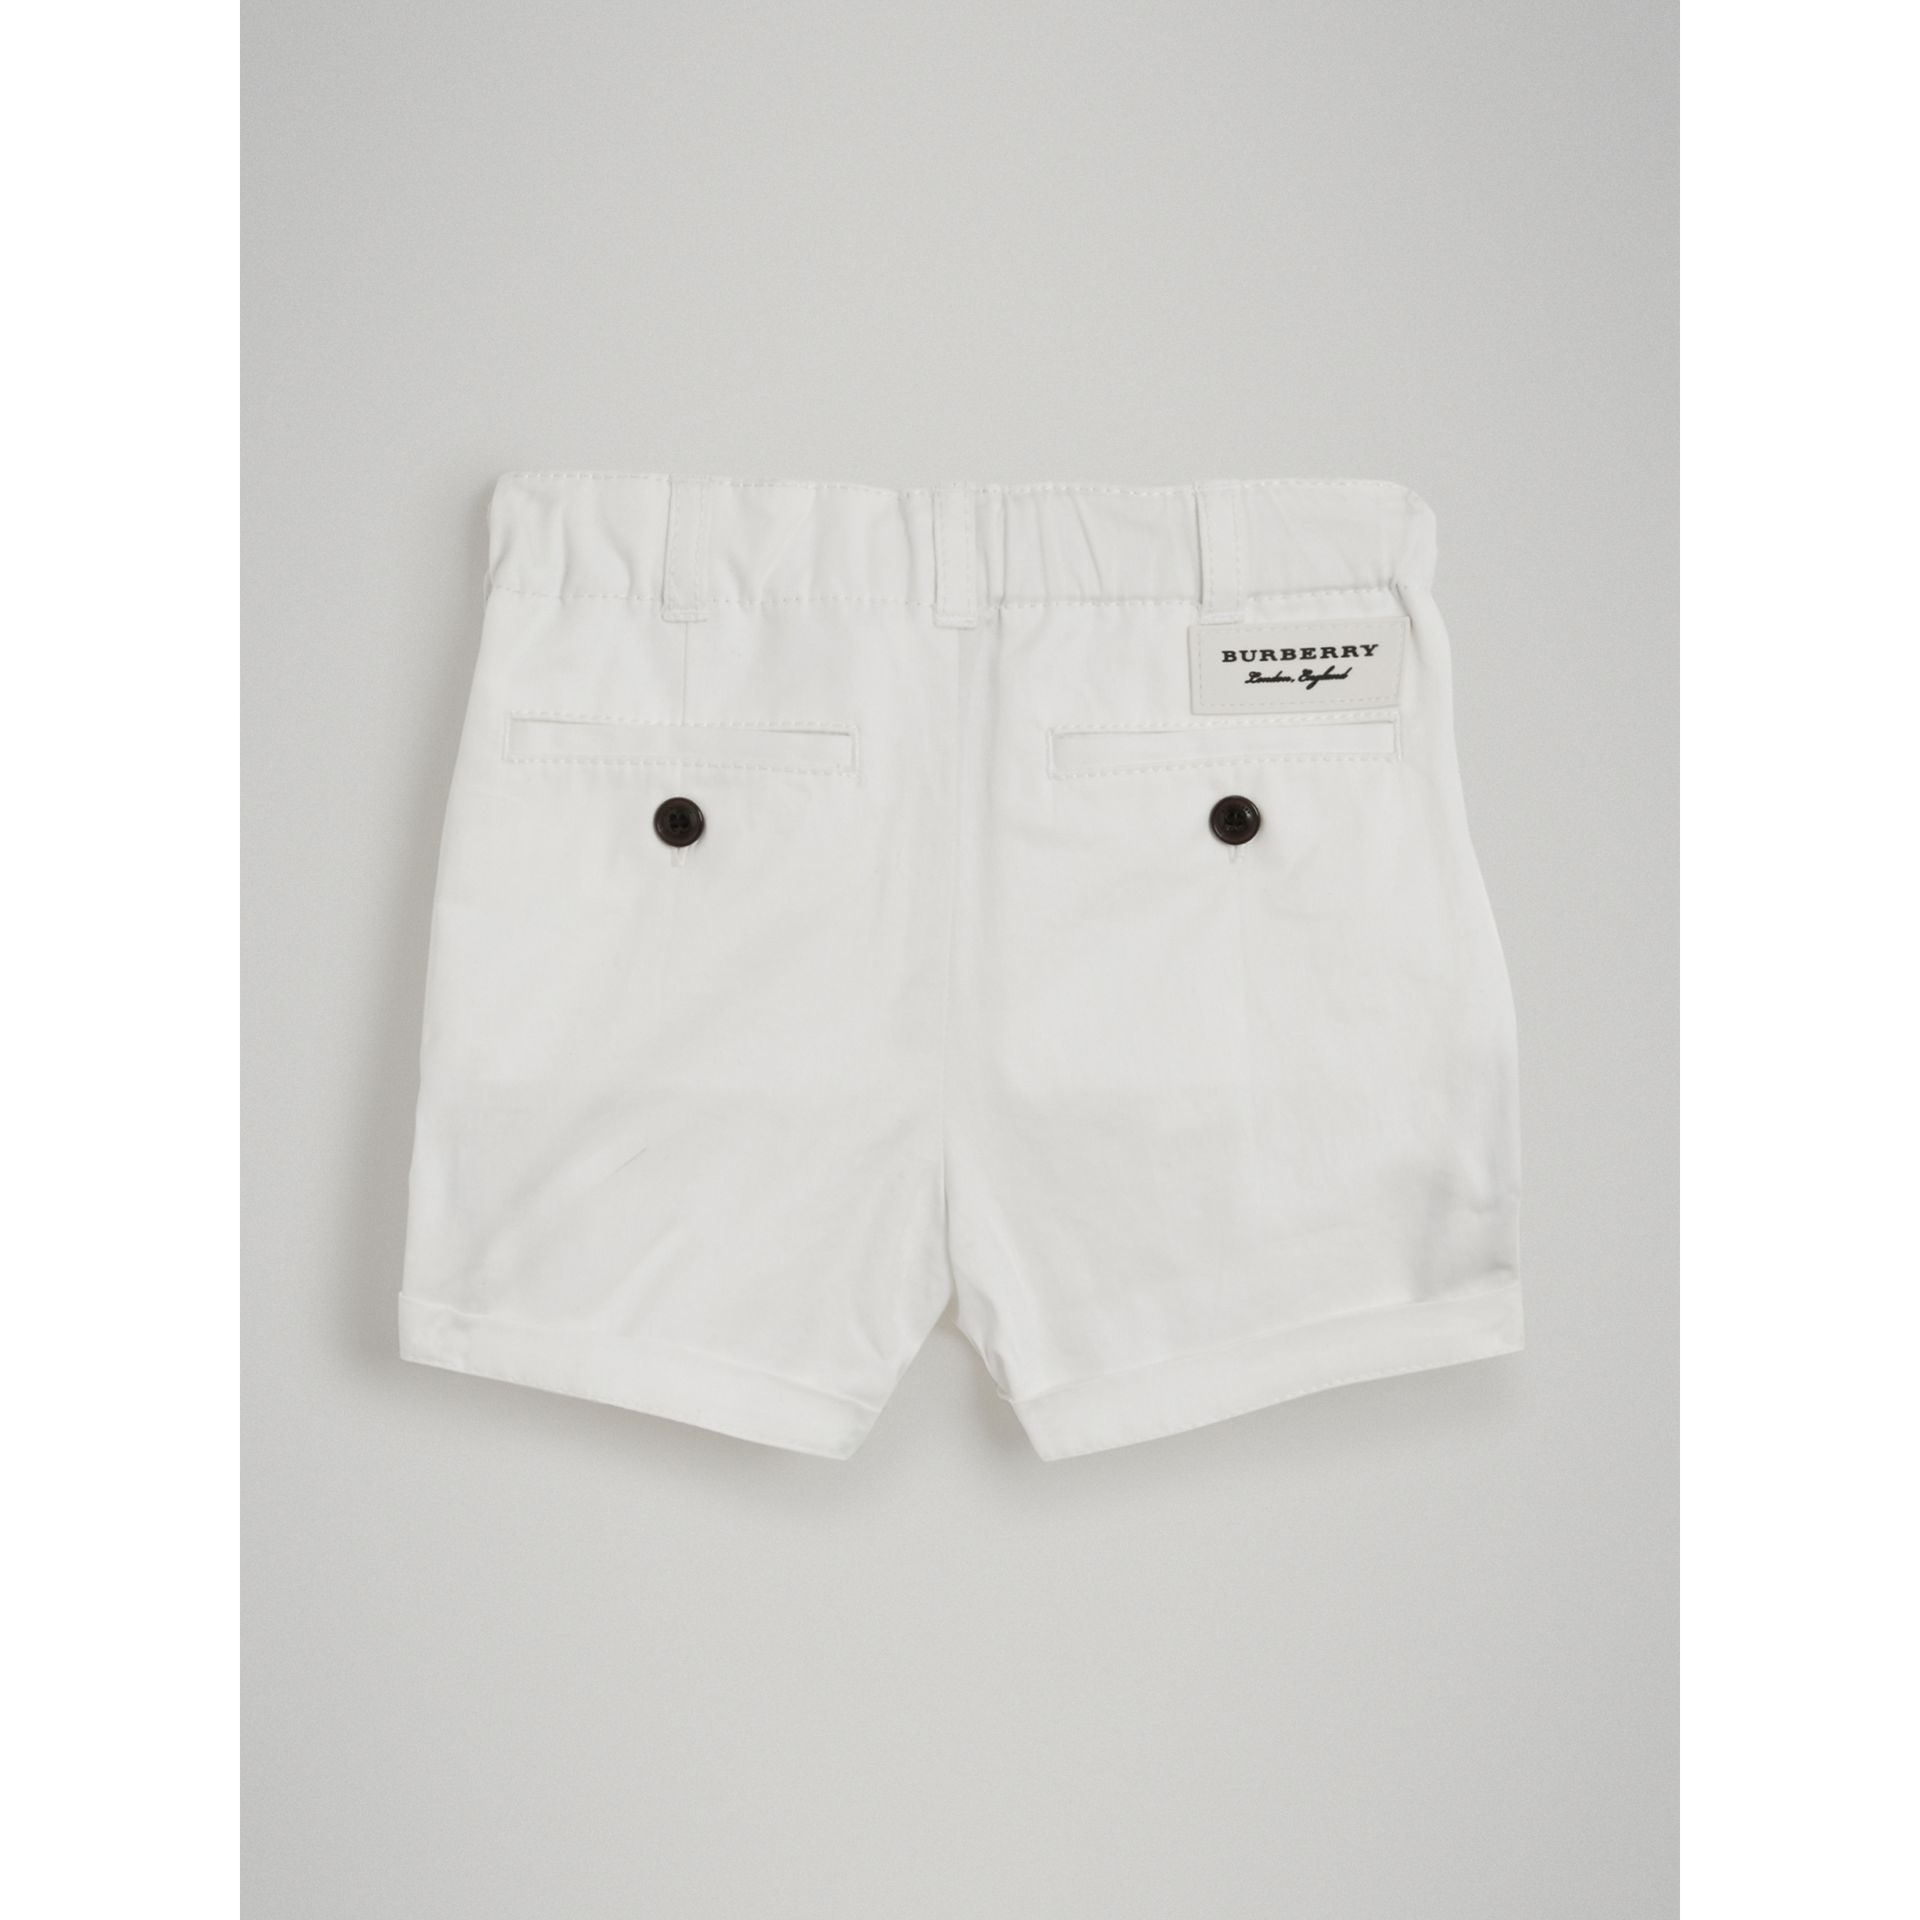 Short chino en sergé de coton (Blanc) | Burberry - photo de la galerie 3